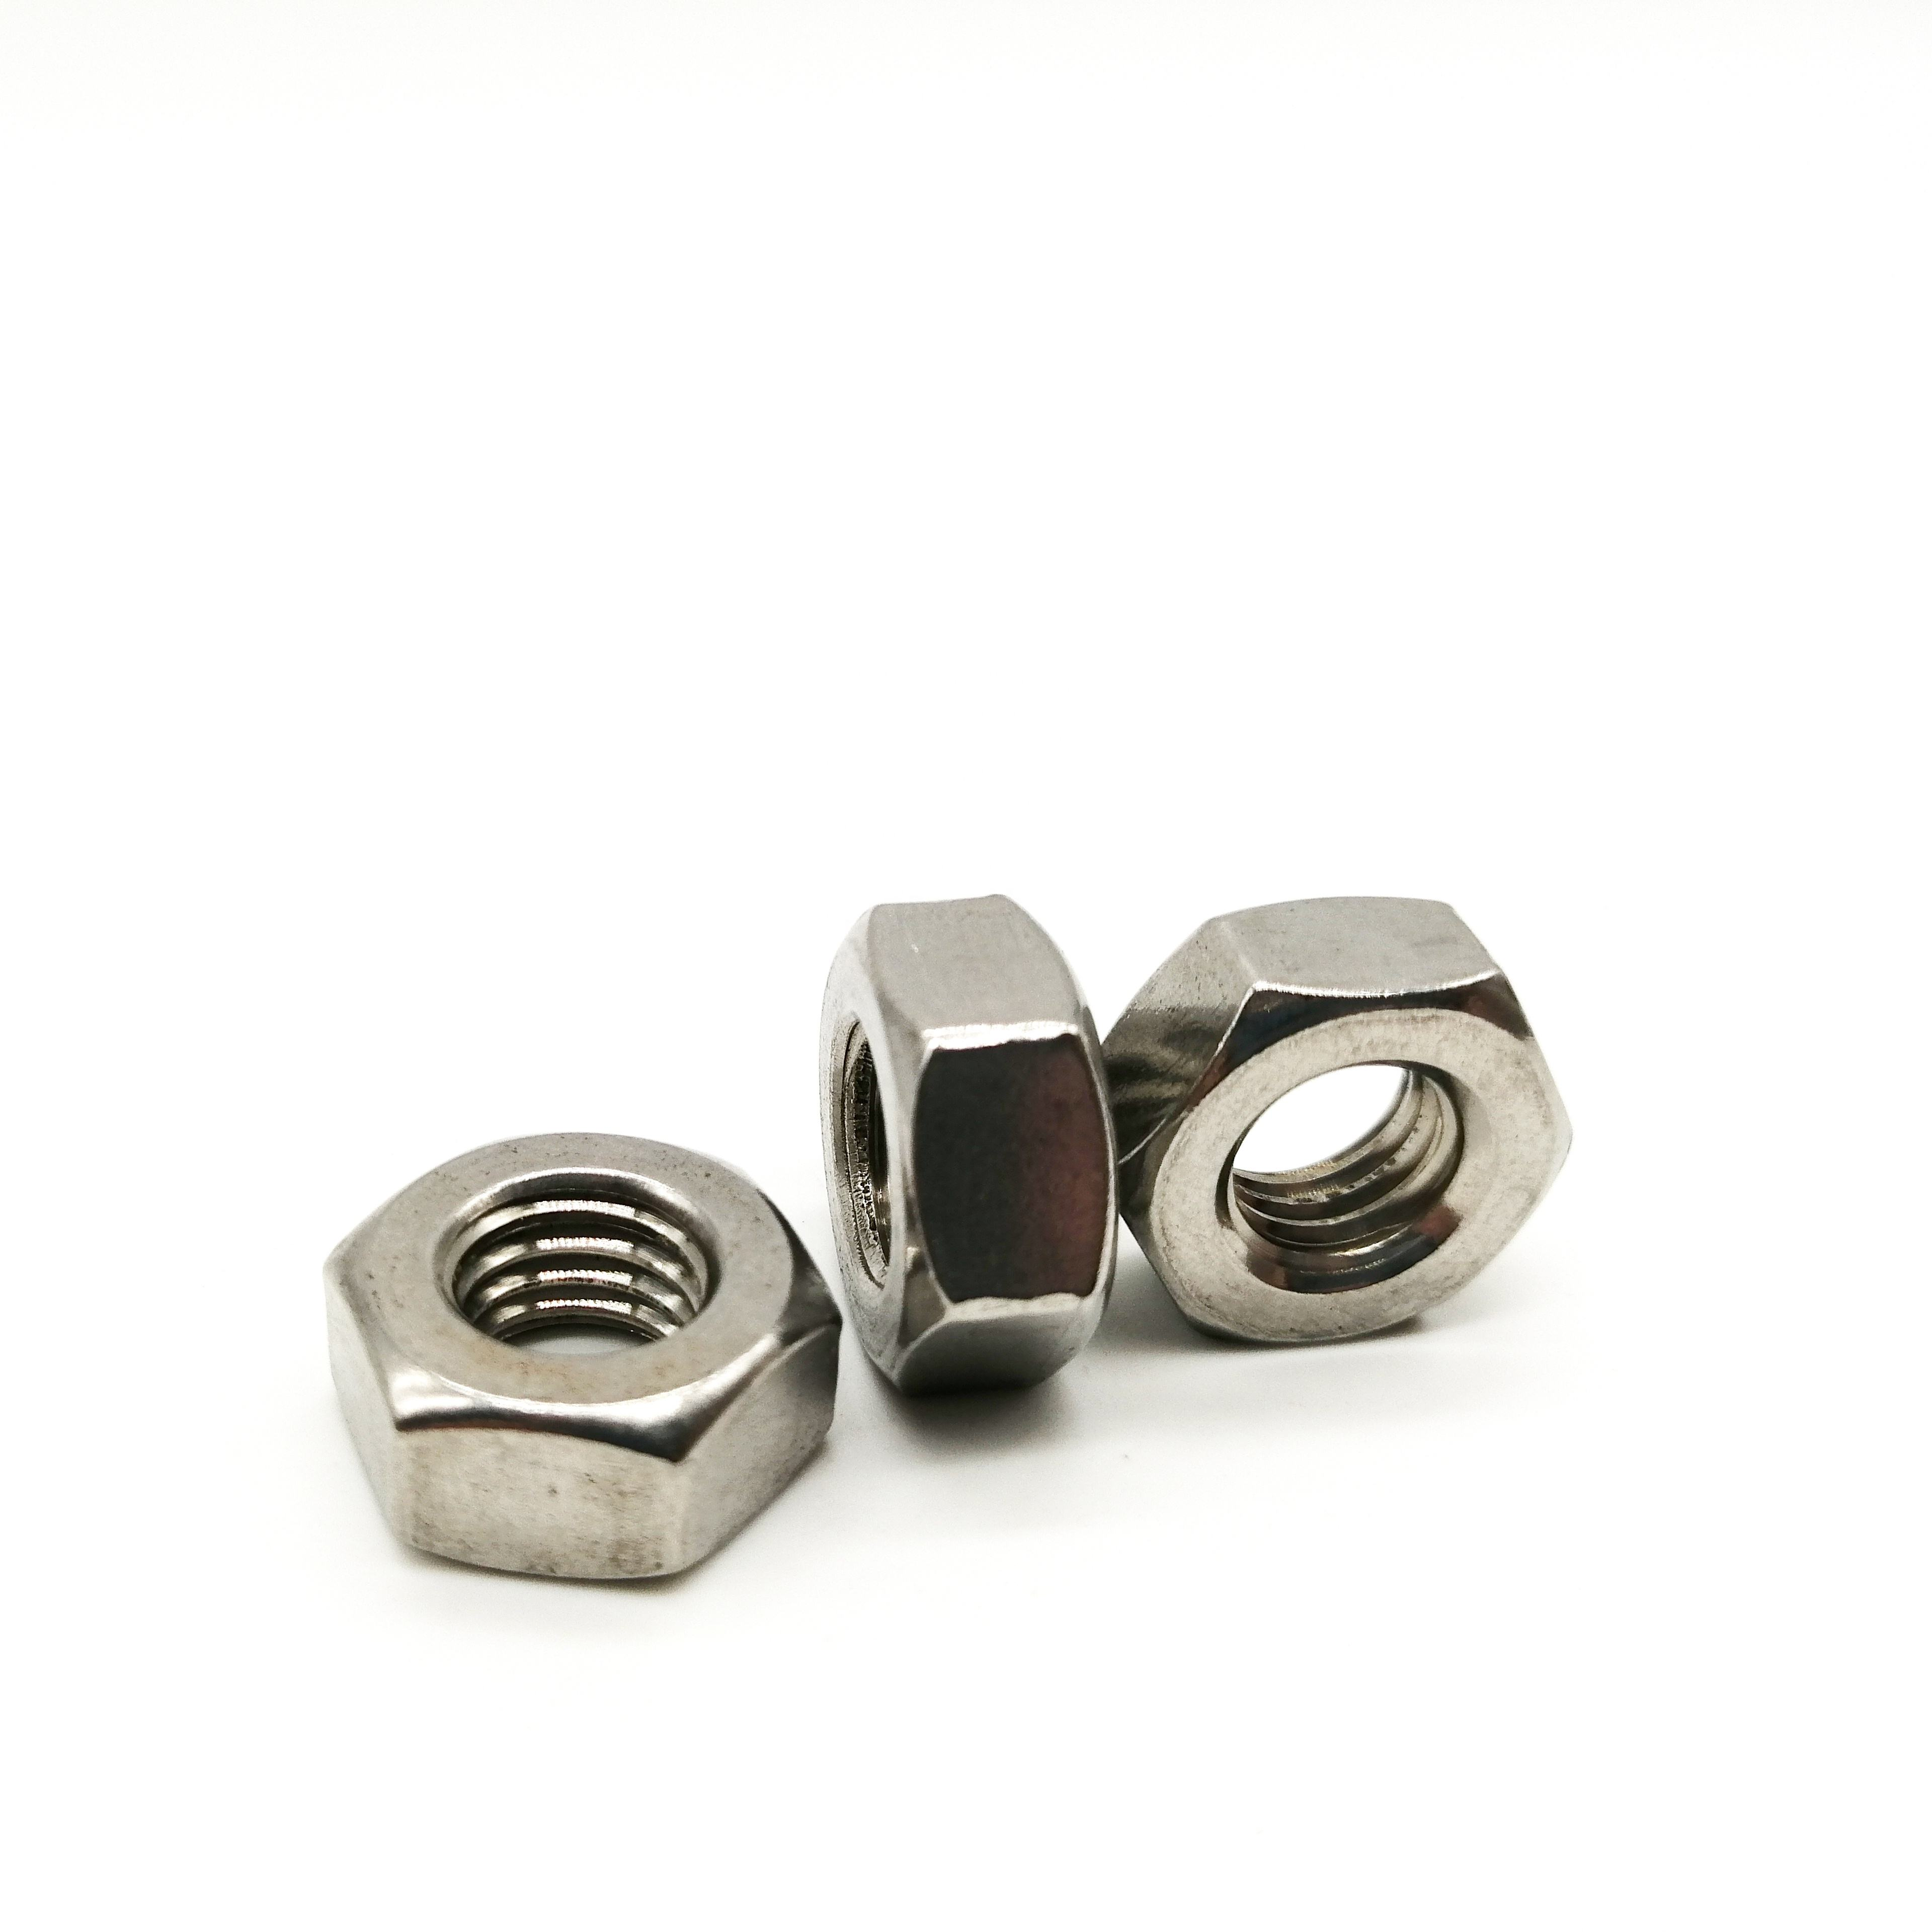 China factory DIN 934 stainless steel 50mm 22mm hex nut 3/4-24